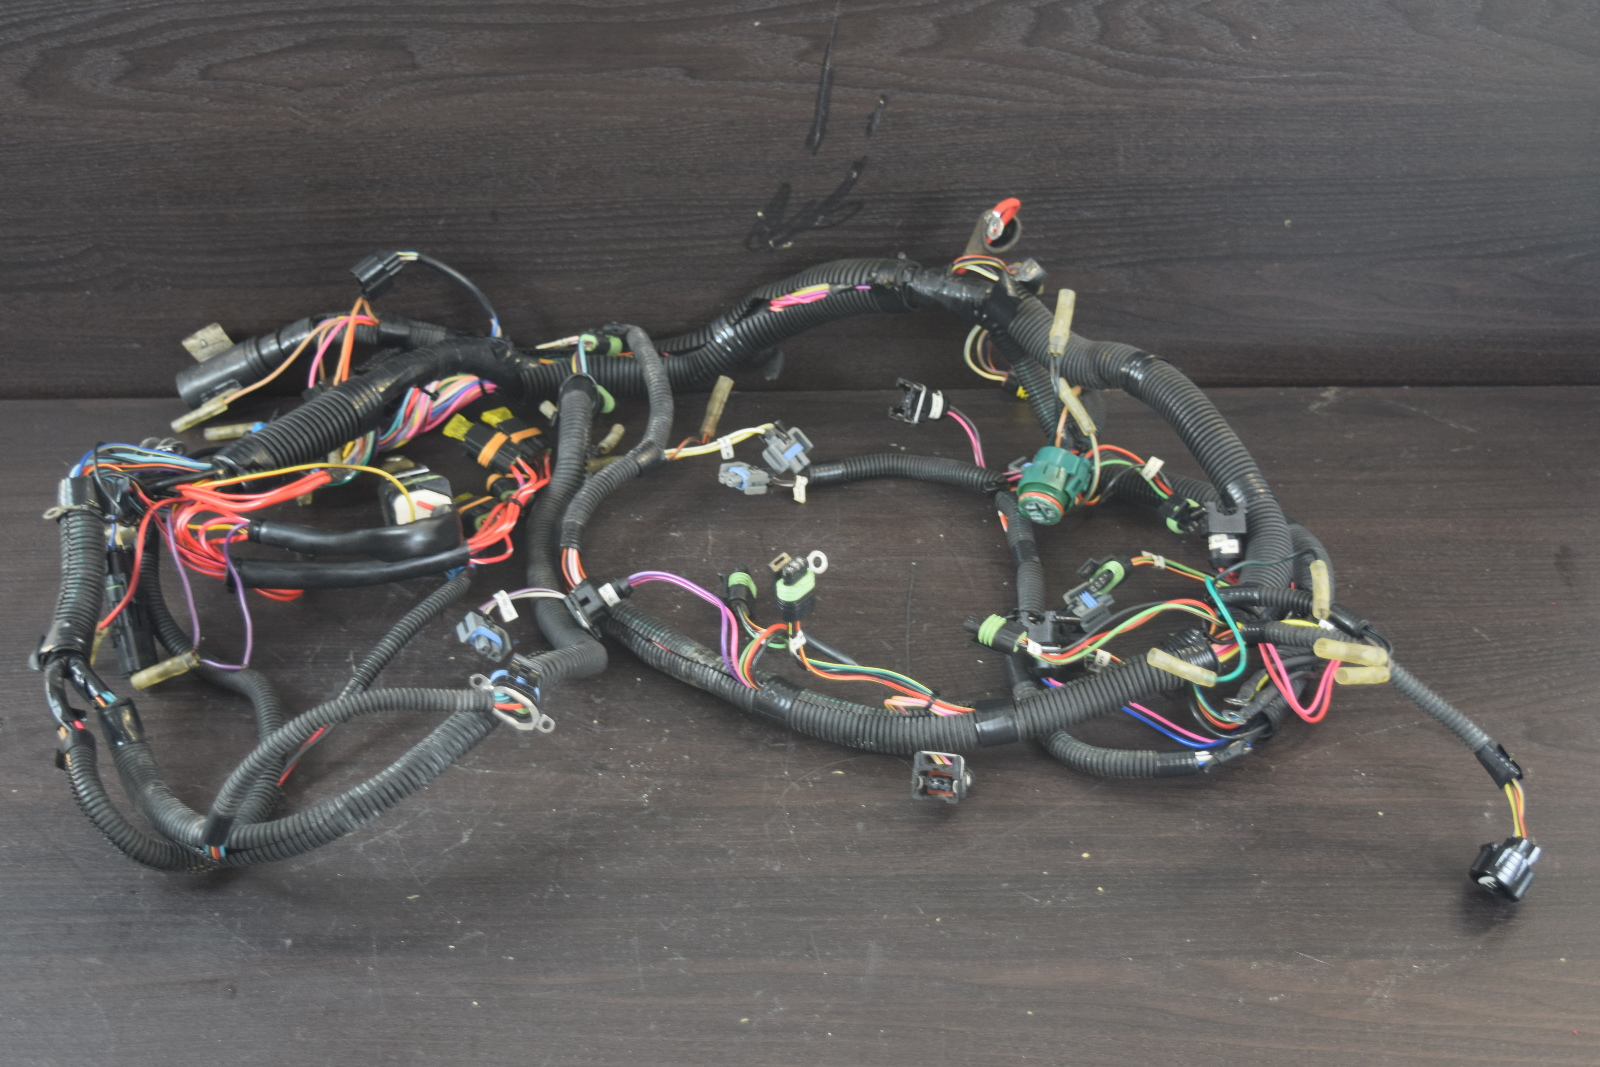 hight resolution of 1998 mercury mariner wiring harness assembly 850385a2 200 225hp dfi v6 3 0l southcentral outboards